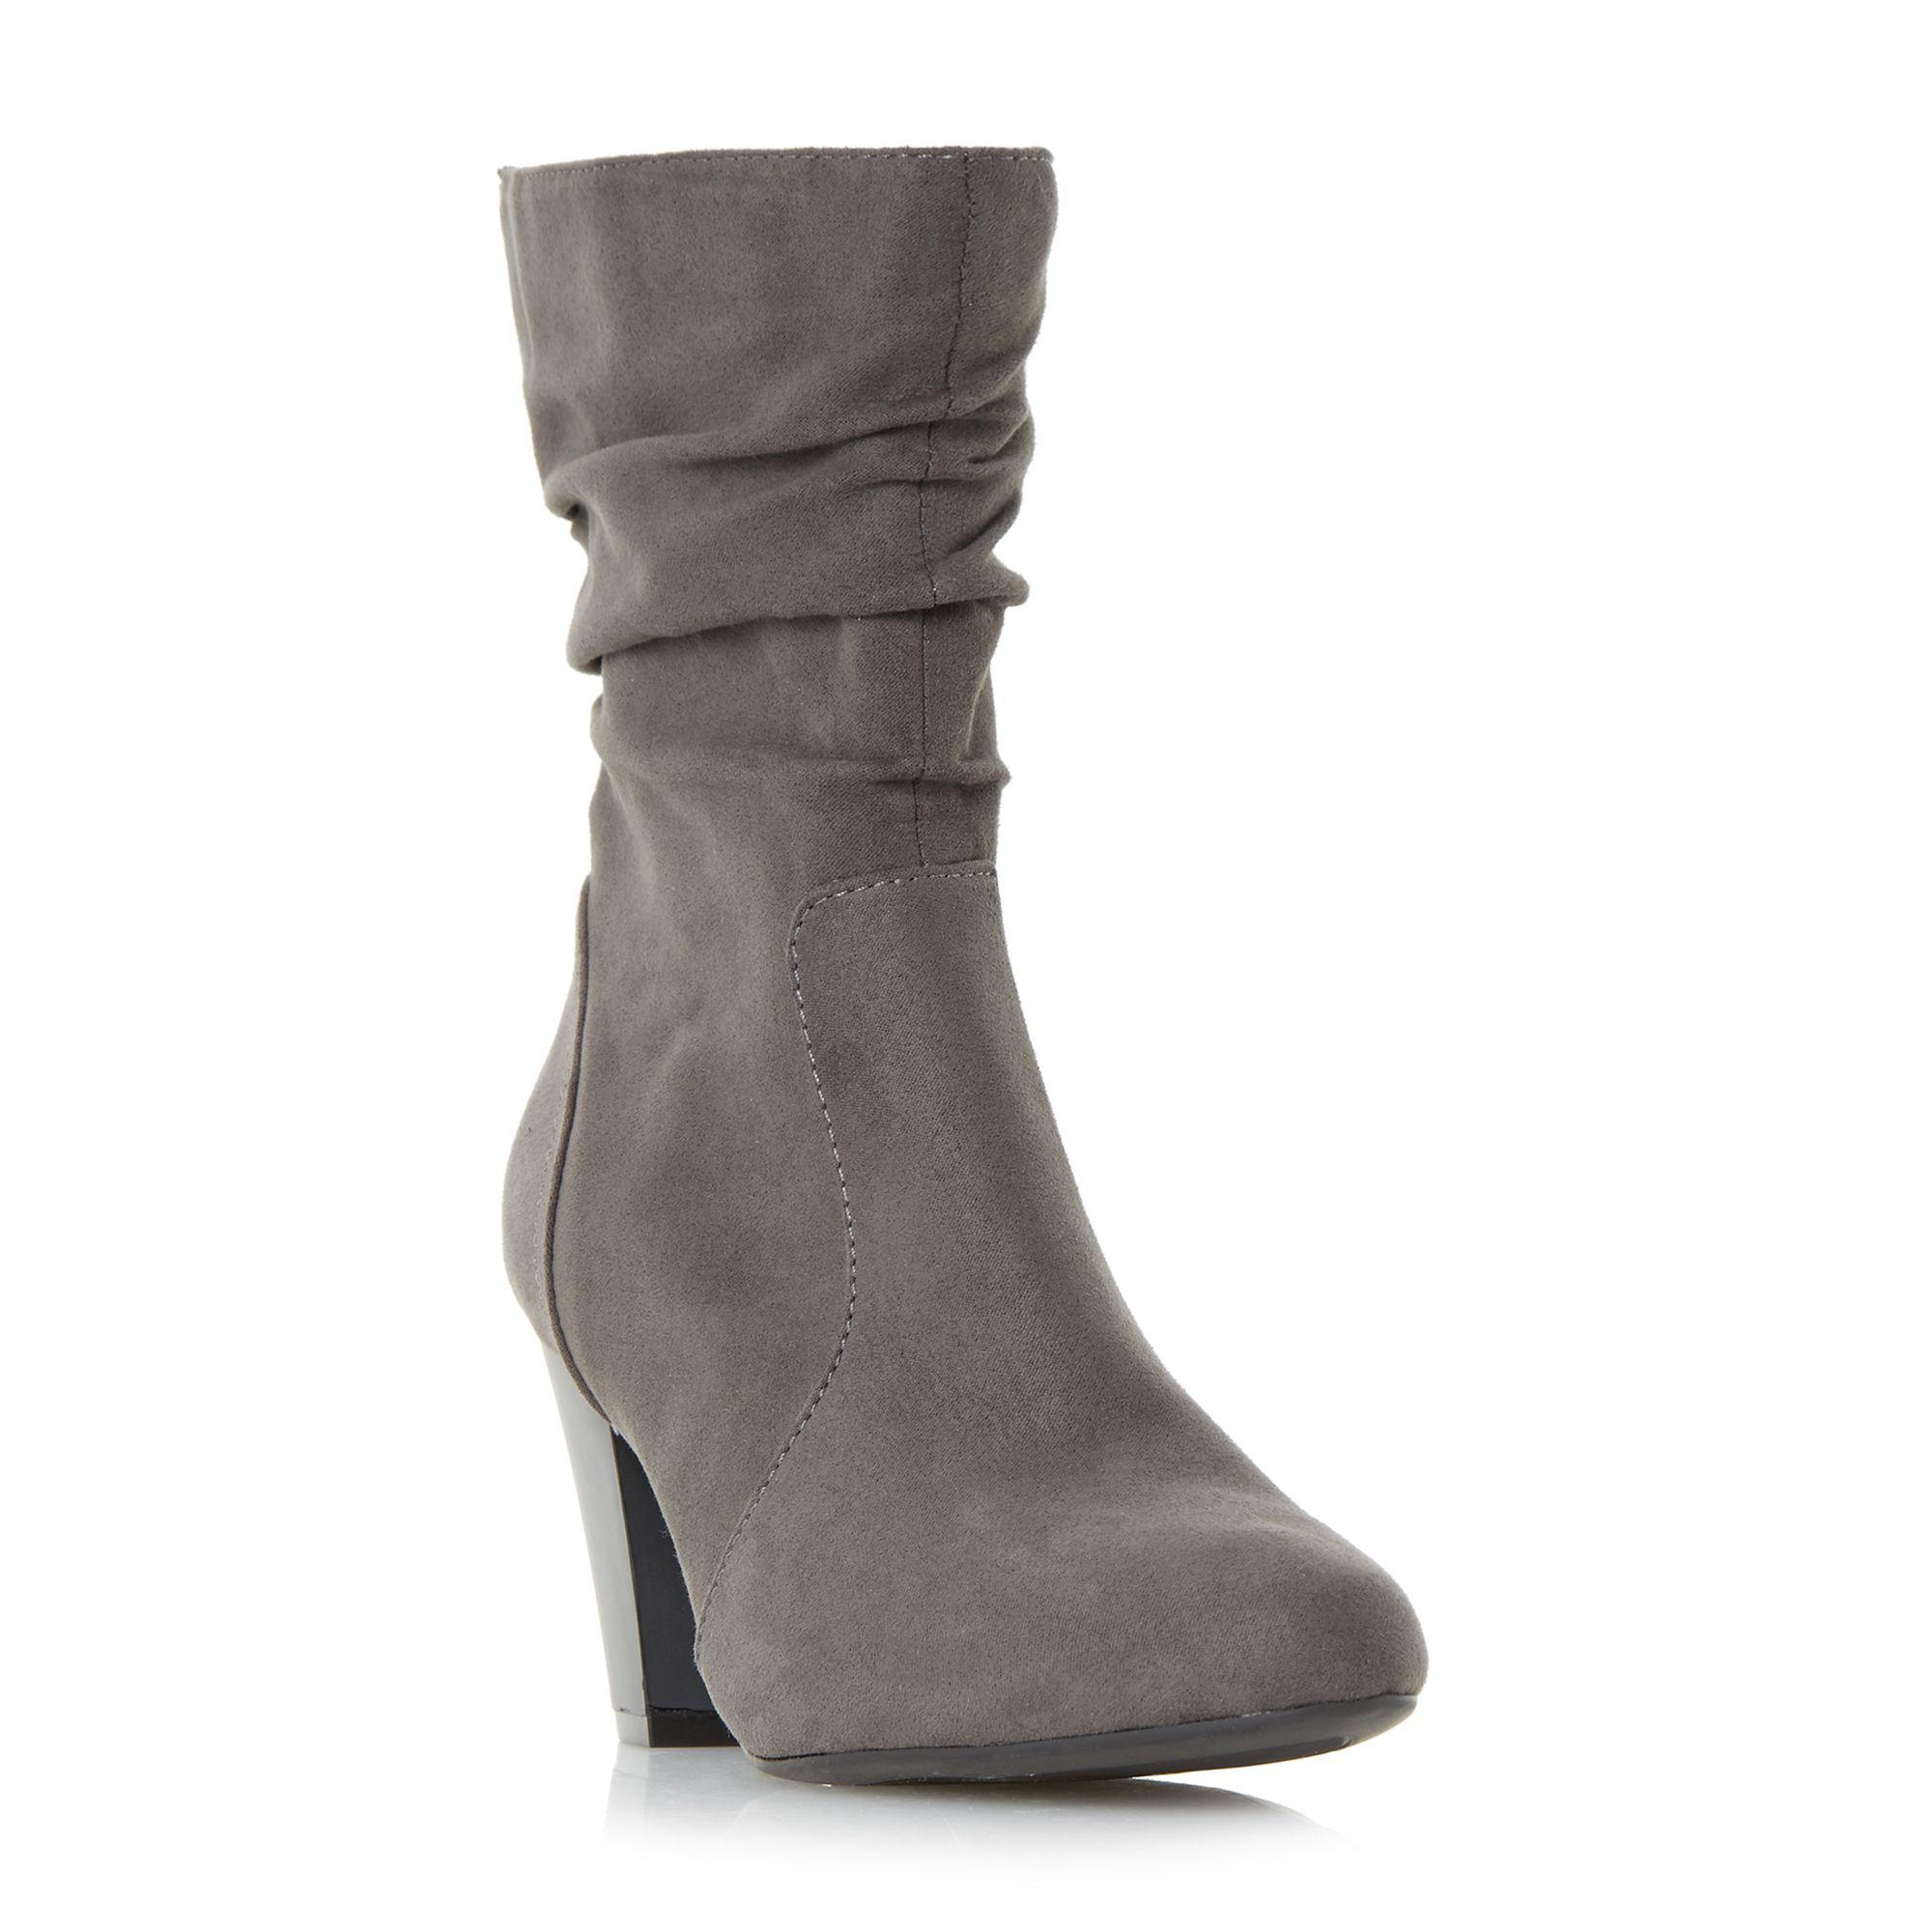 508b8c752710 Dune Grey  ronni  Ruched Heeled Calf Boots in Gray - Lyst